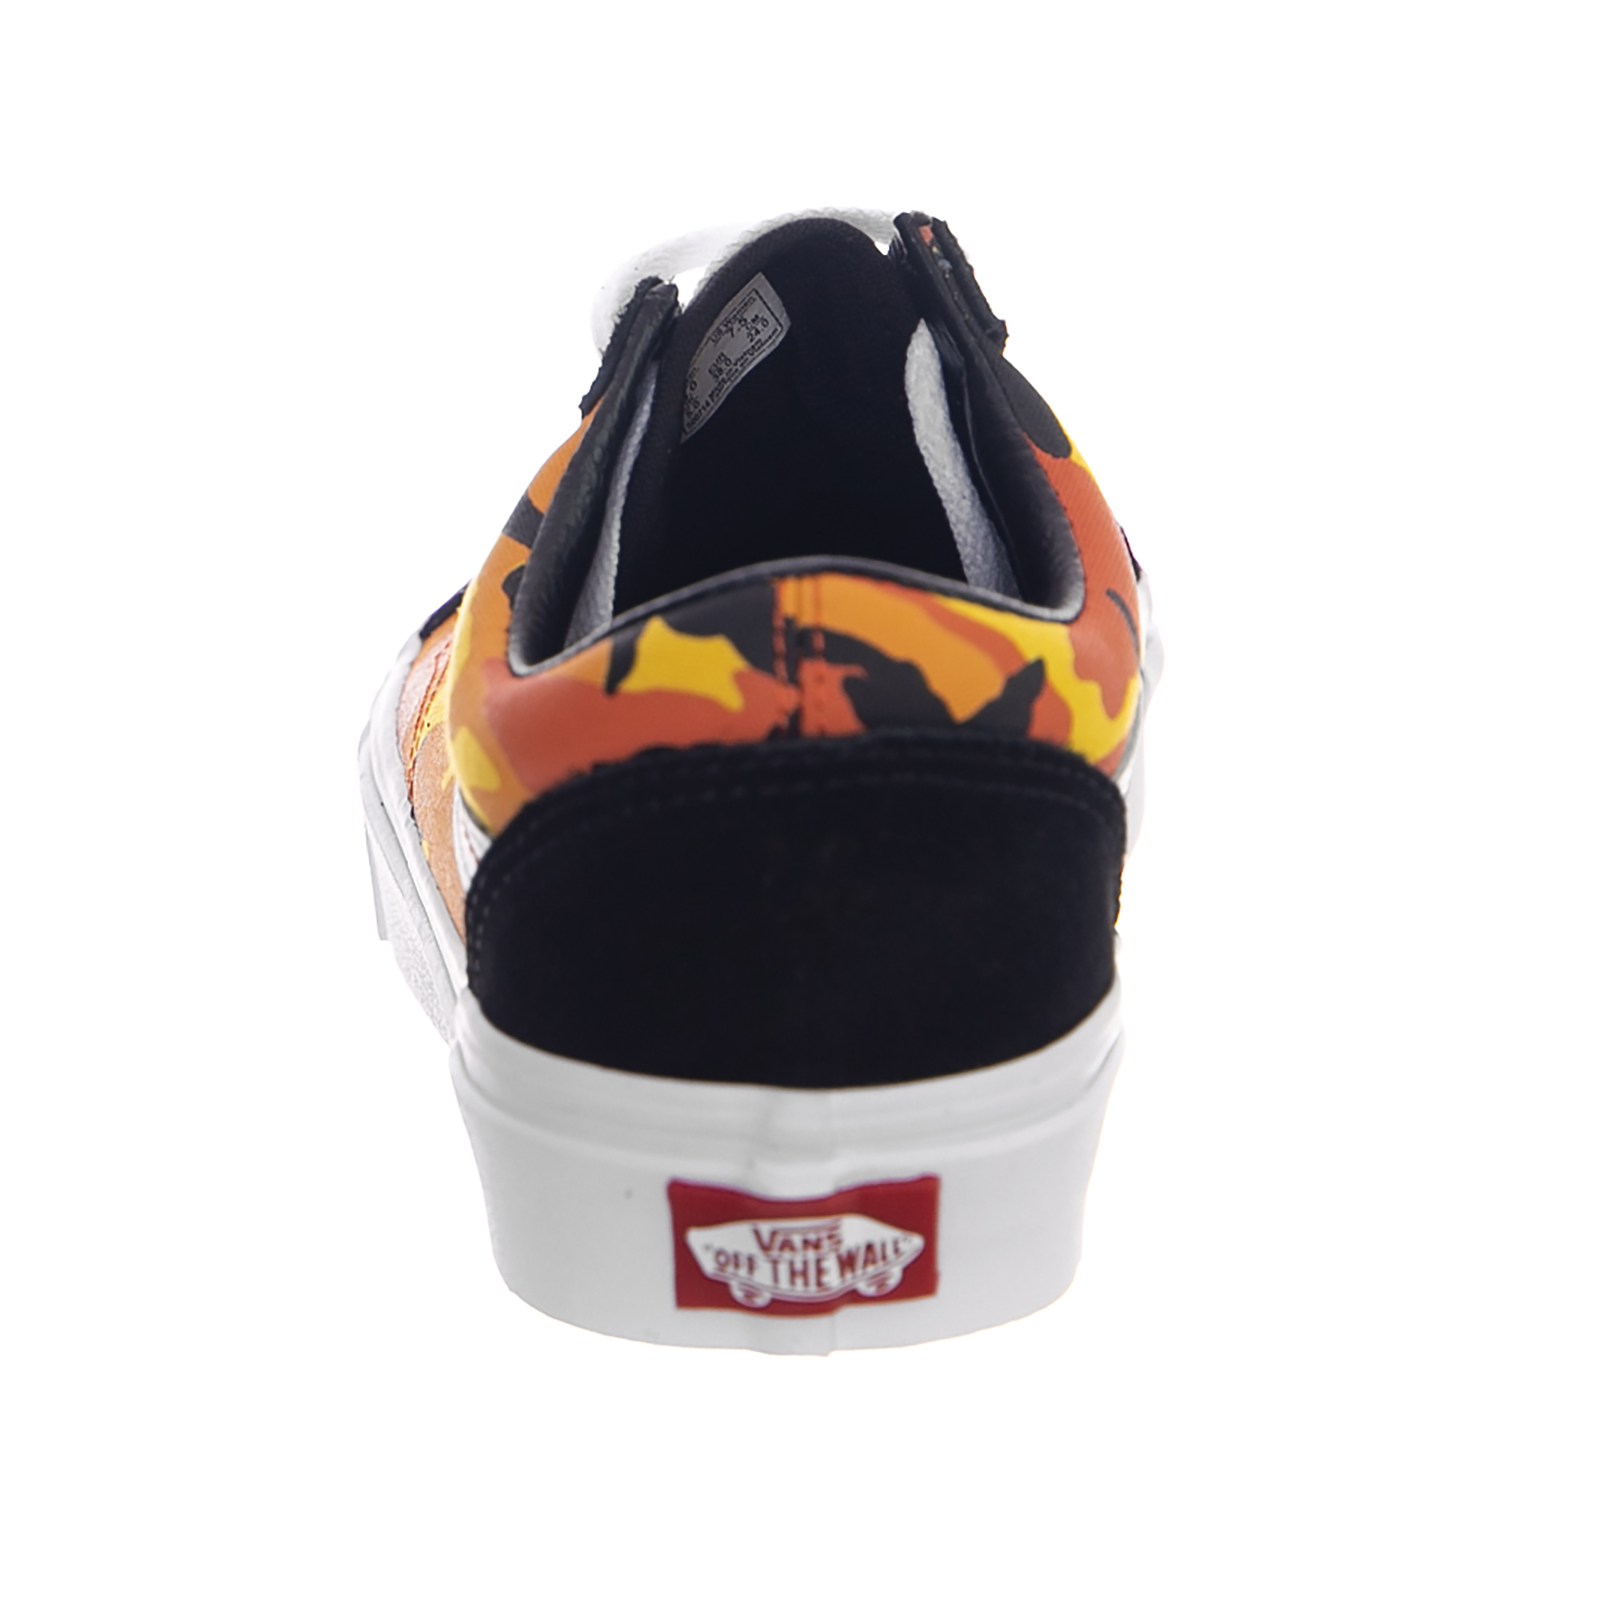 3062d2e7f6 Vans Sneakers Ua Old Skool (Pop Camo) Black Spicy Orange True White Nero 4  4 di 6 ...